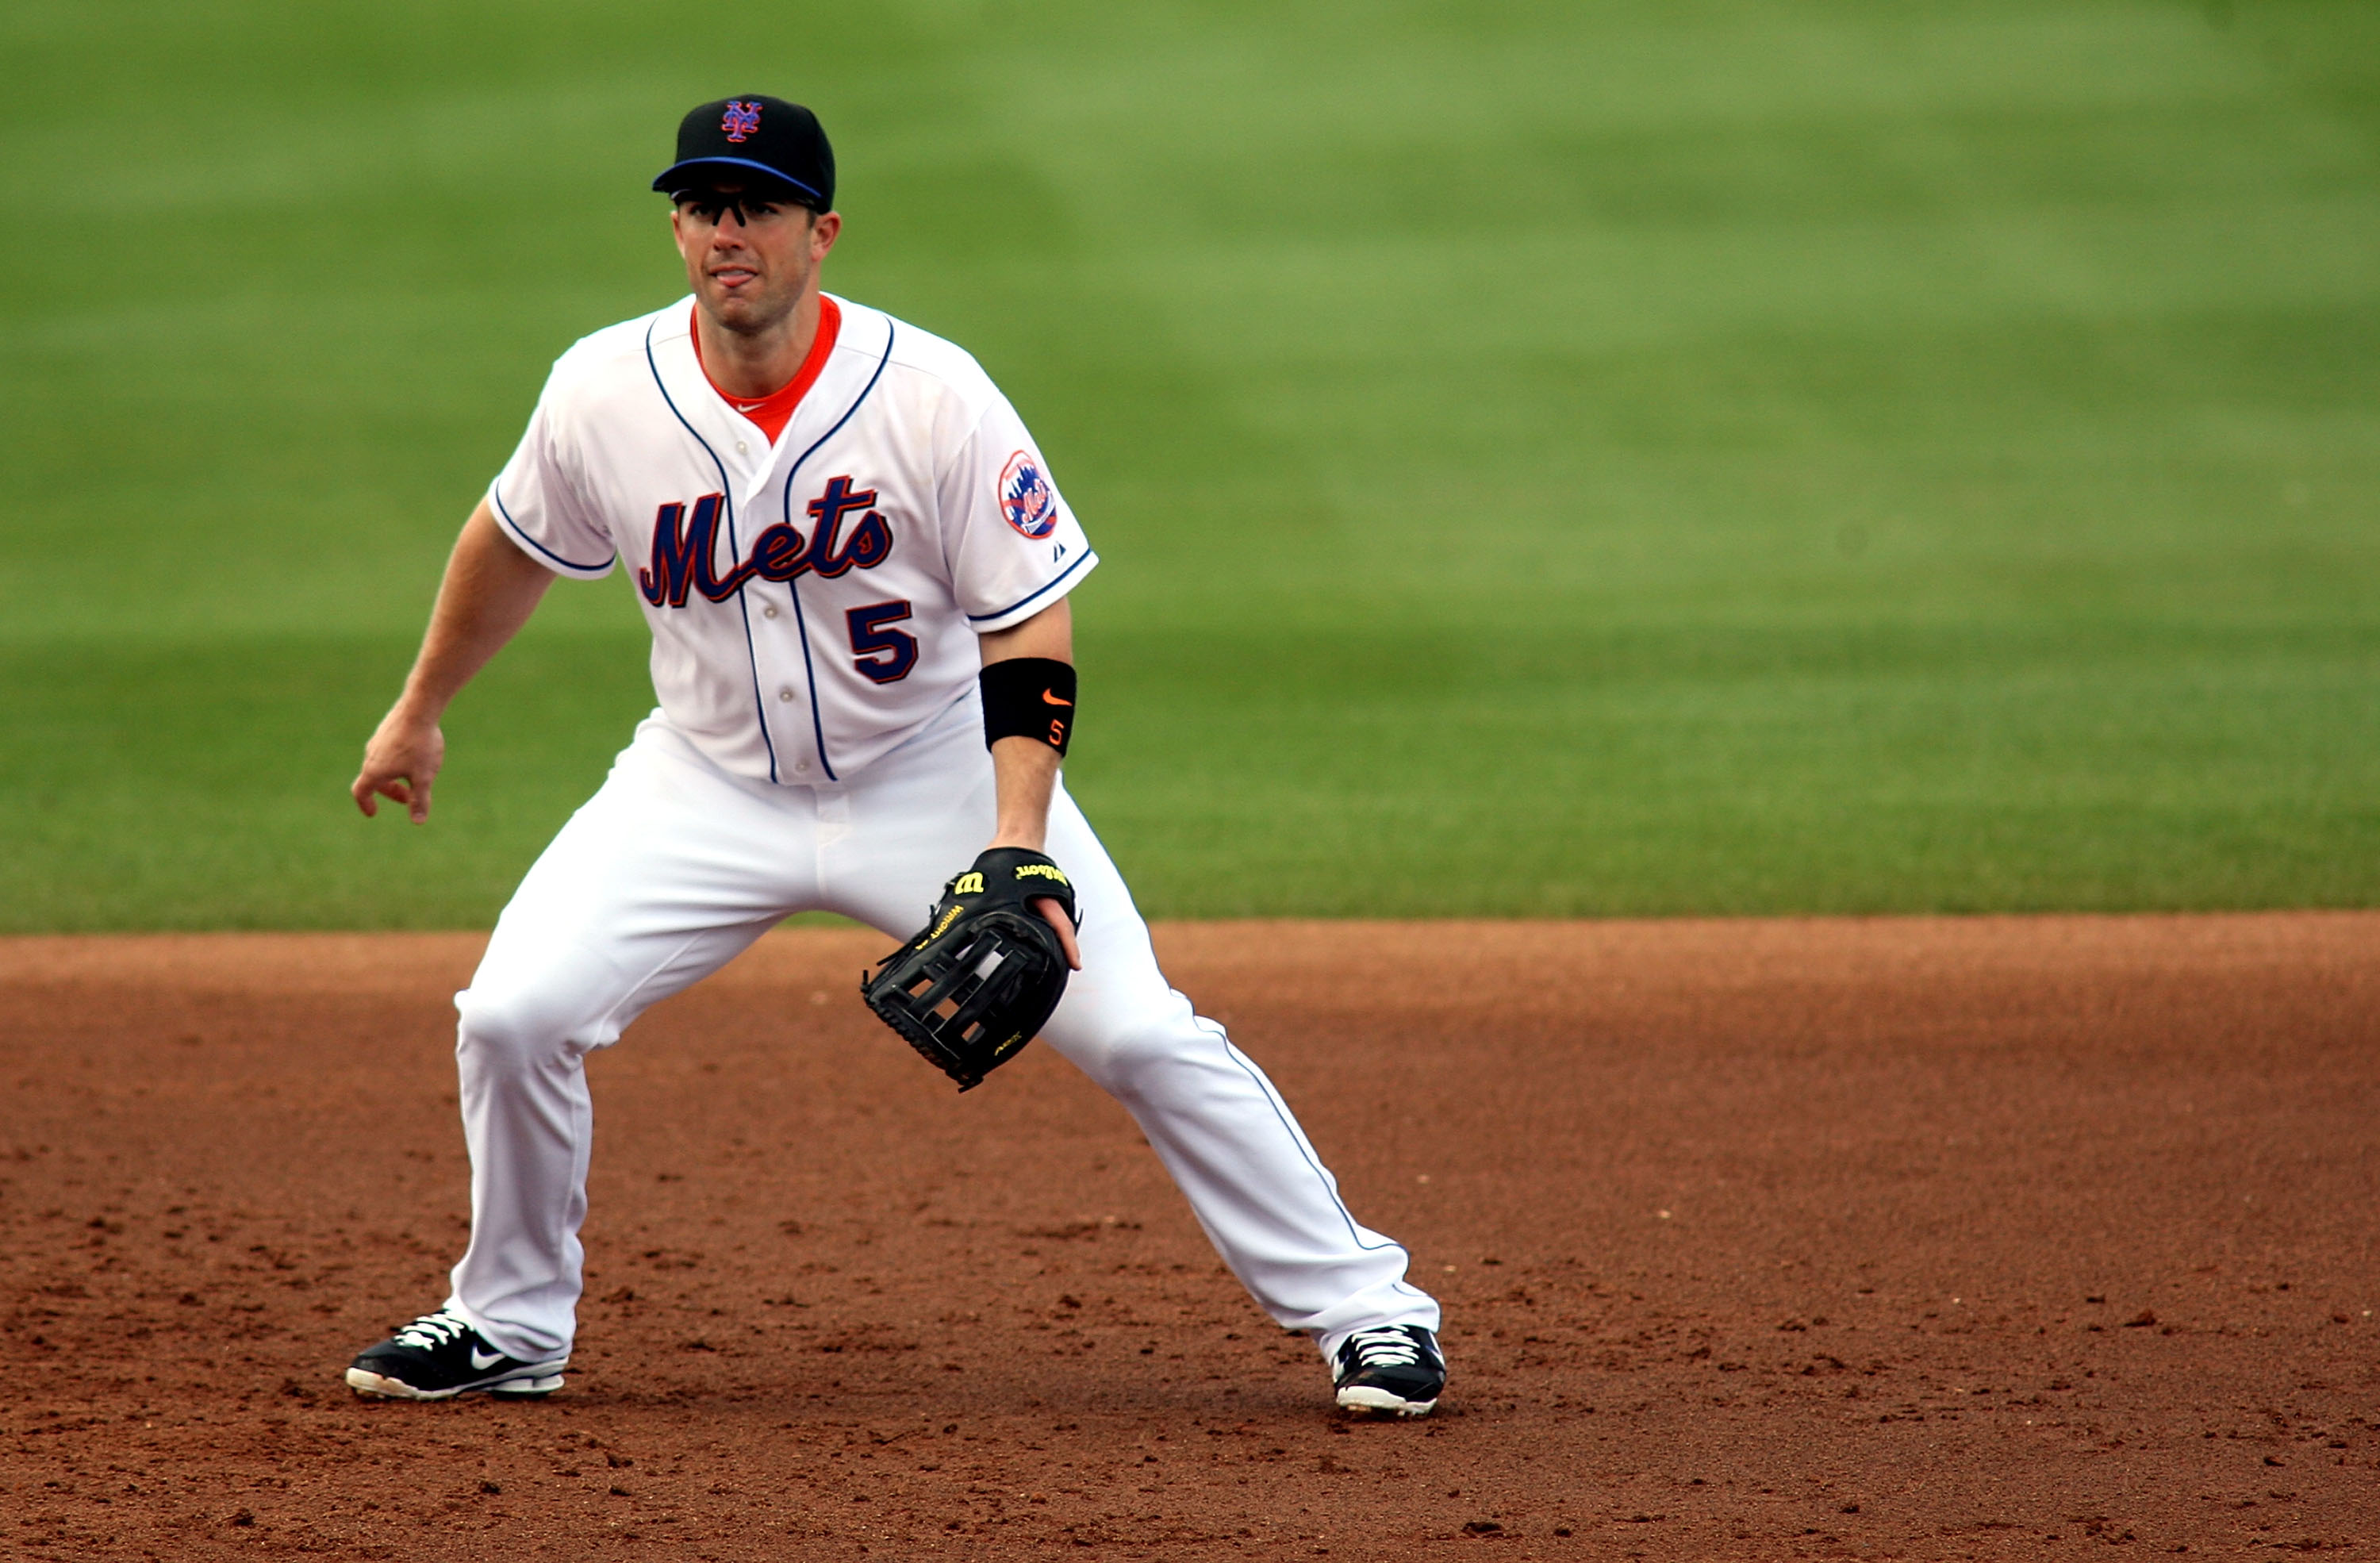 David Wright is more than just an All-Star third baseman.  He is the face of the Mets' franchise.